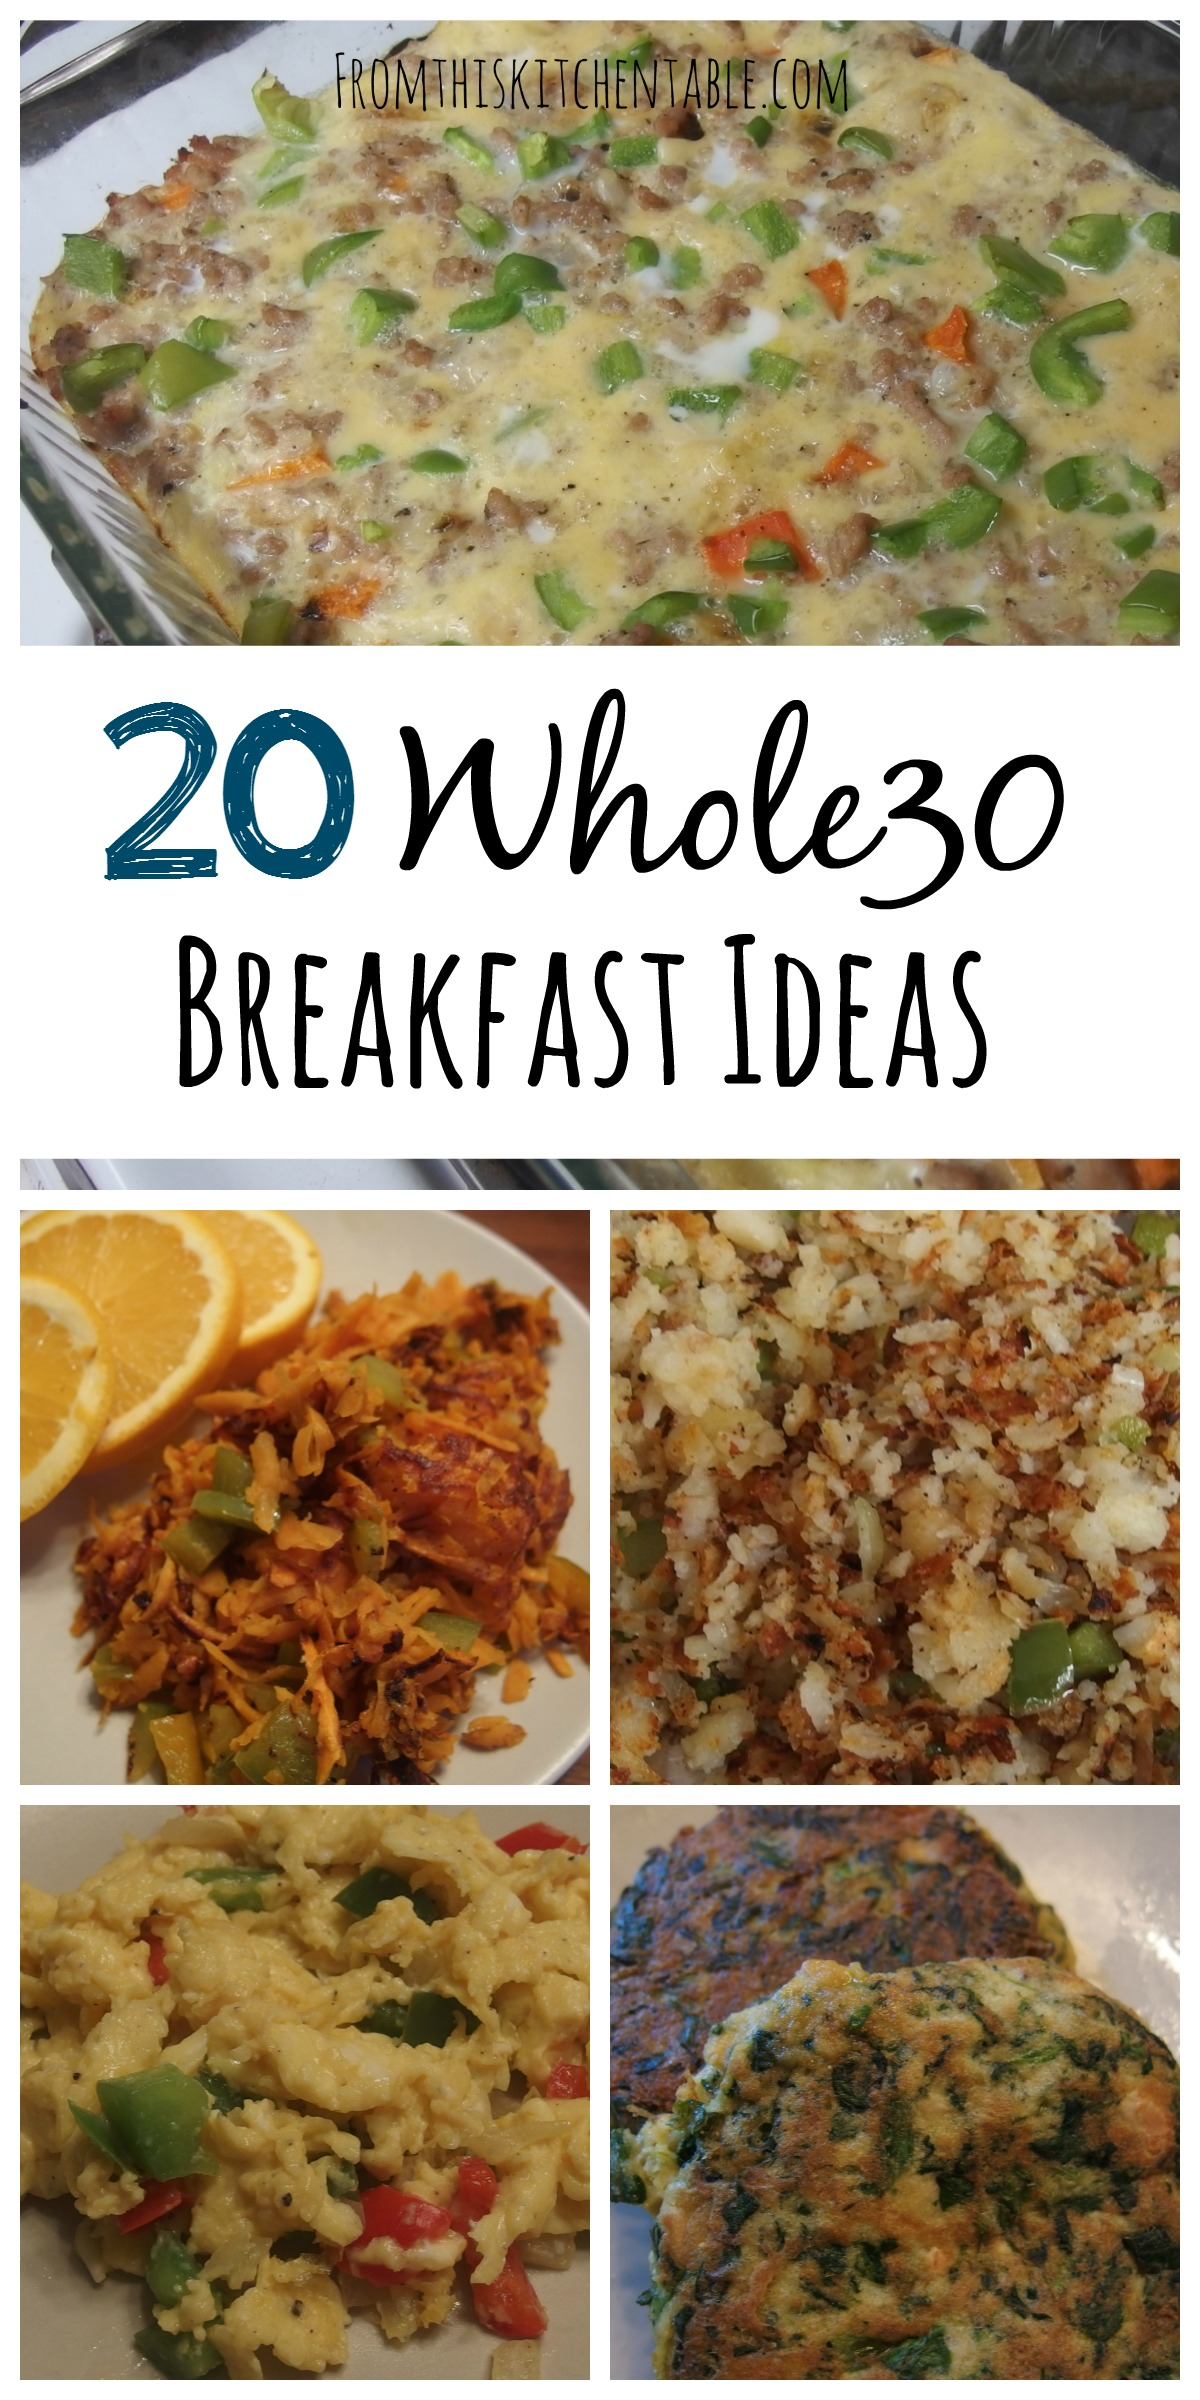 Whole 30 Crockpot Recipes Sweet Potato